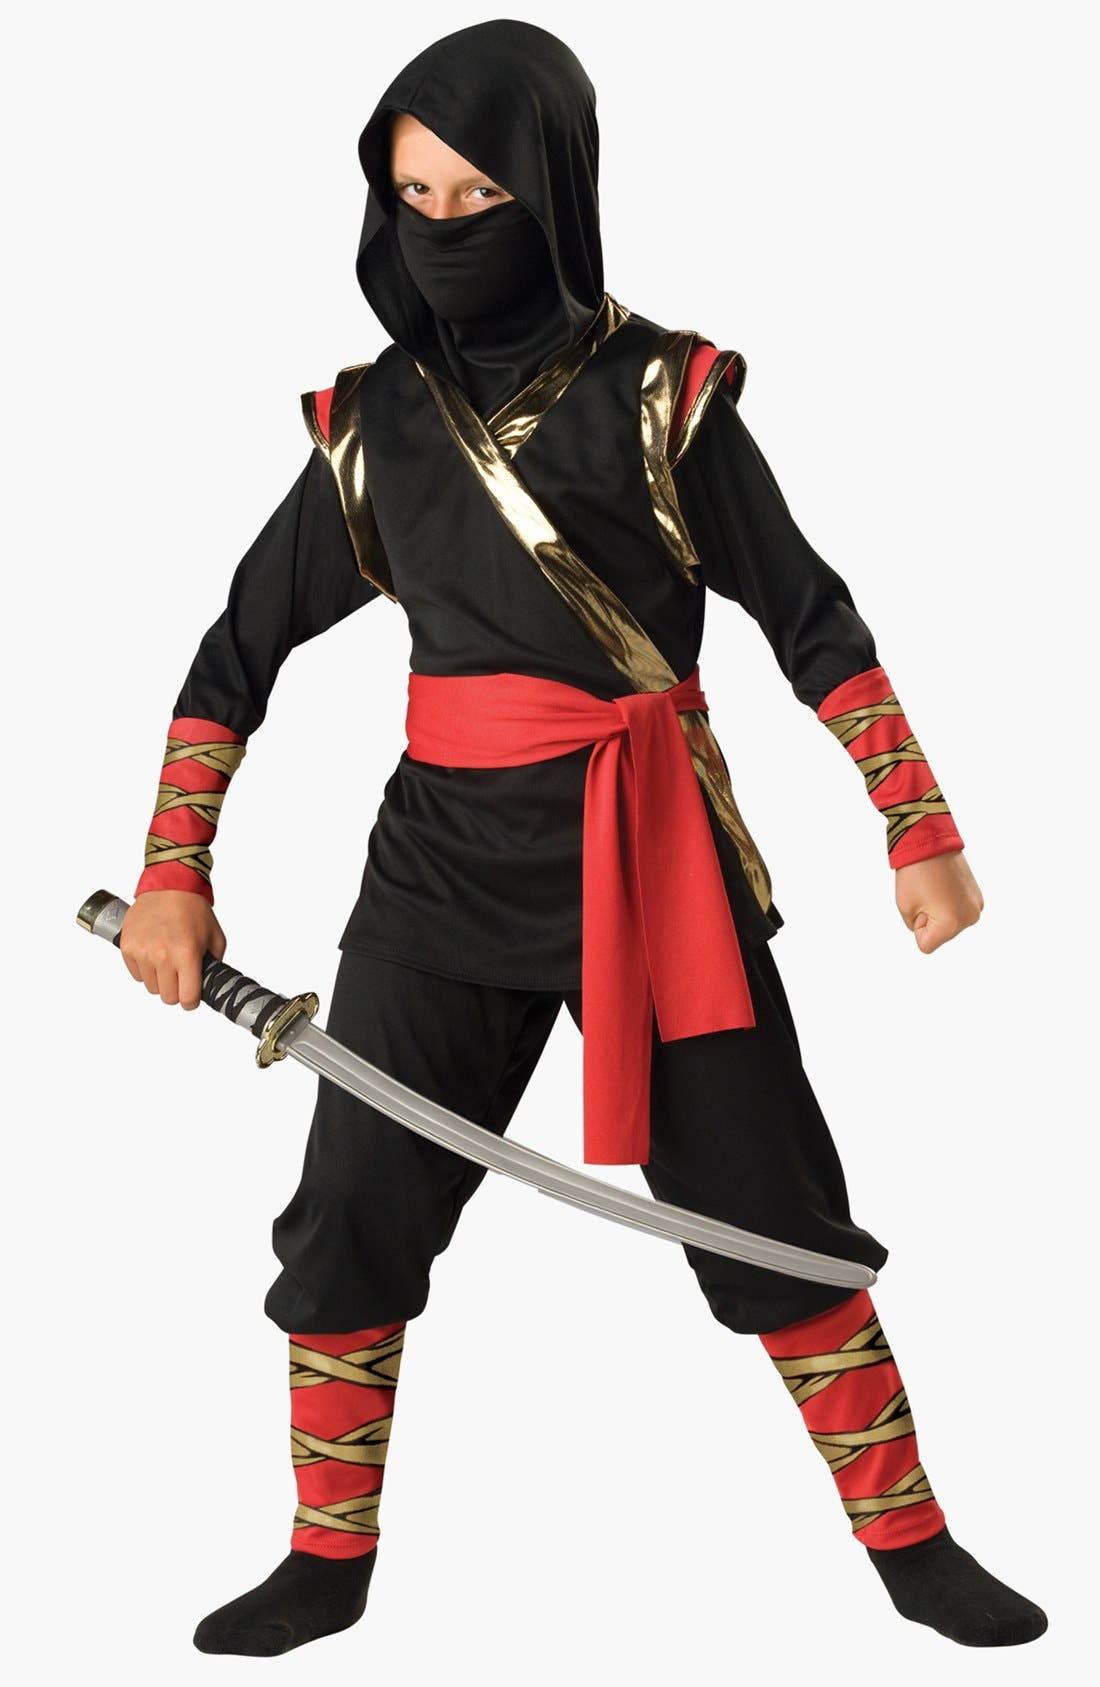 Alternate Image 1 Selected - InCharacter Costumes 'Ninja' Tunic & Pants (Little Boys & Big Boys)